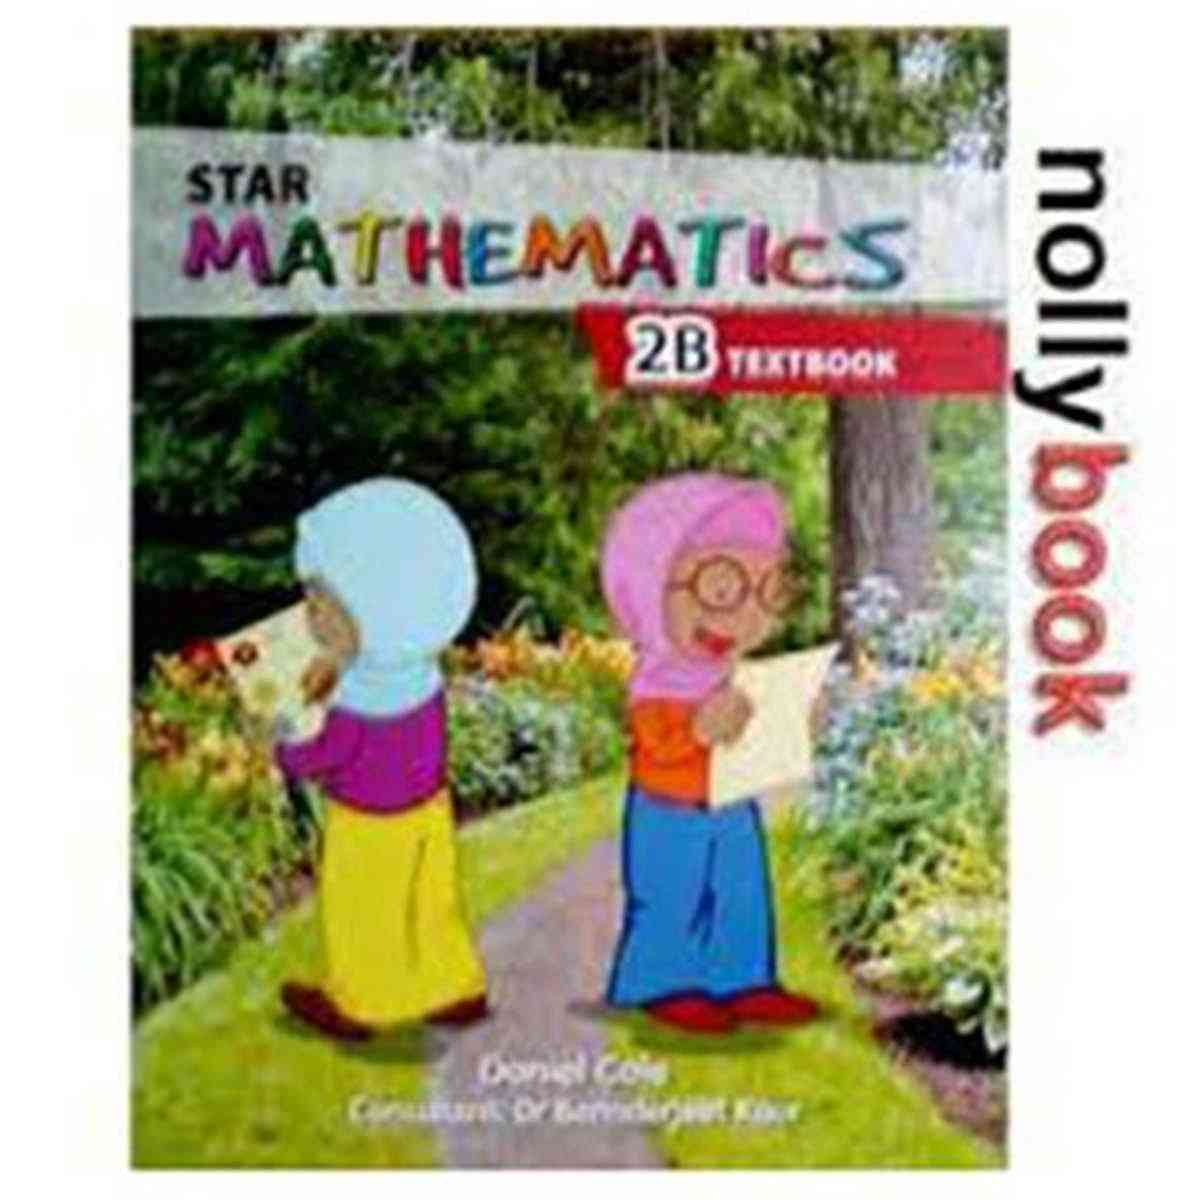 Paramount Star Mathematics: Textbook 2B Pb